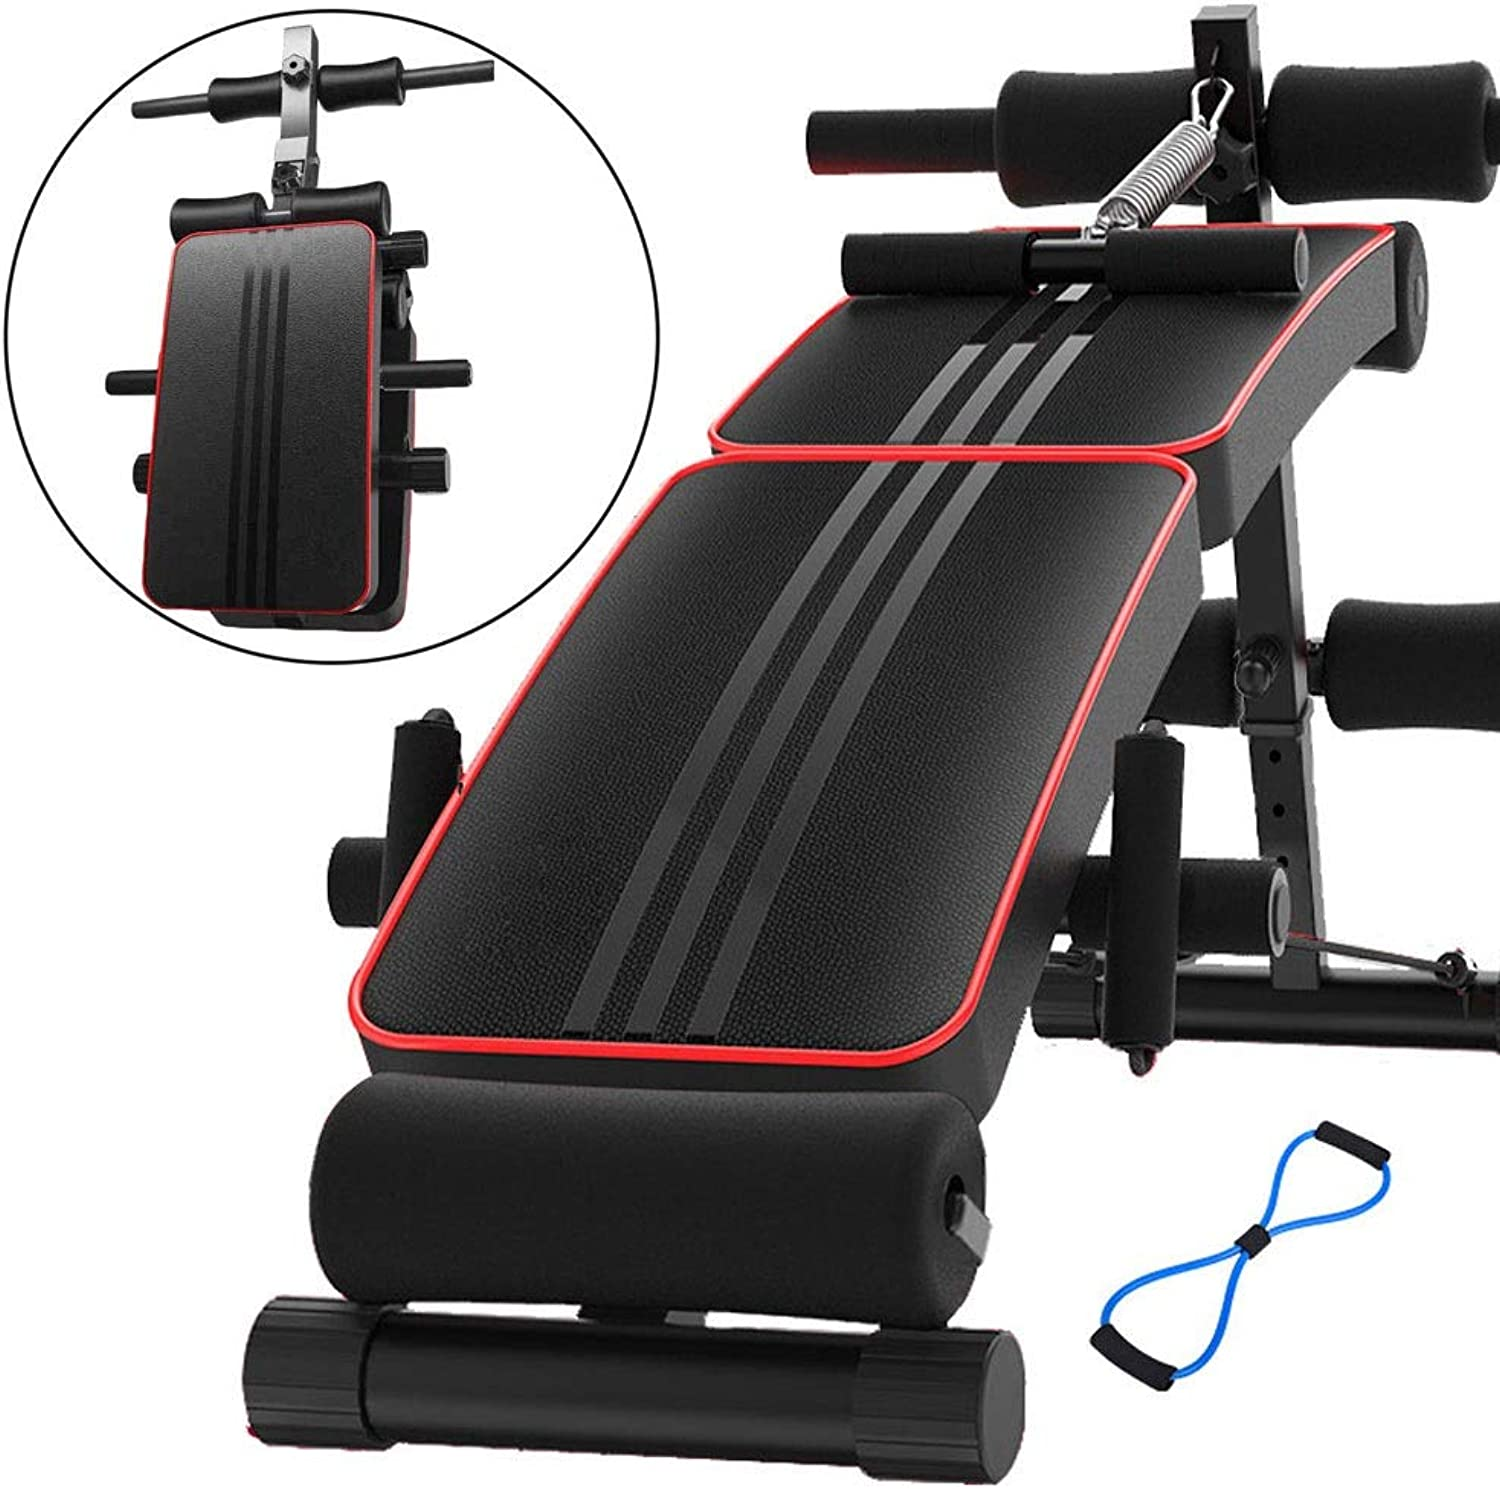 Gym Sit-up Bench Adjustable Weight Bench Exercise Table Reverse Crunch Handle for Exercise Abdominal Exercise Equipment Folding Kick Bench